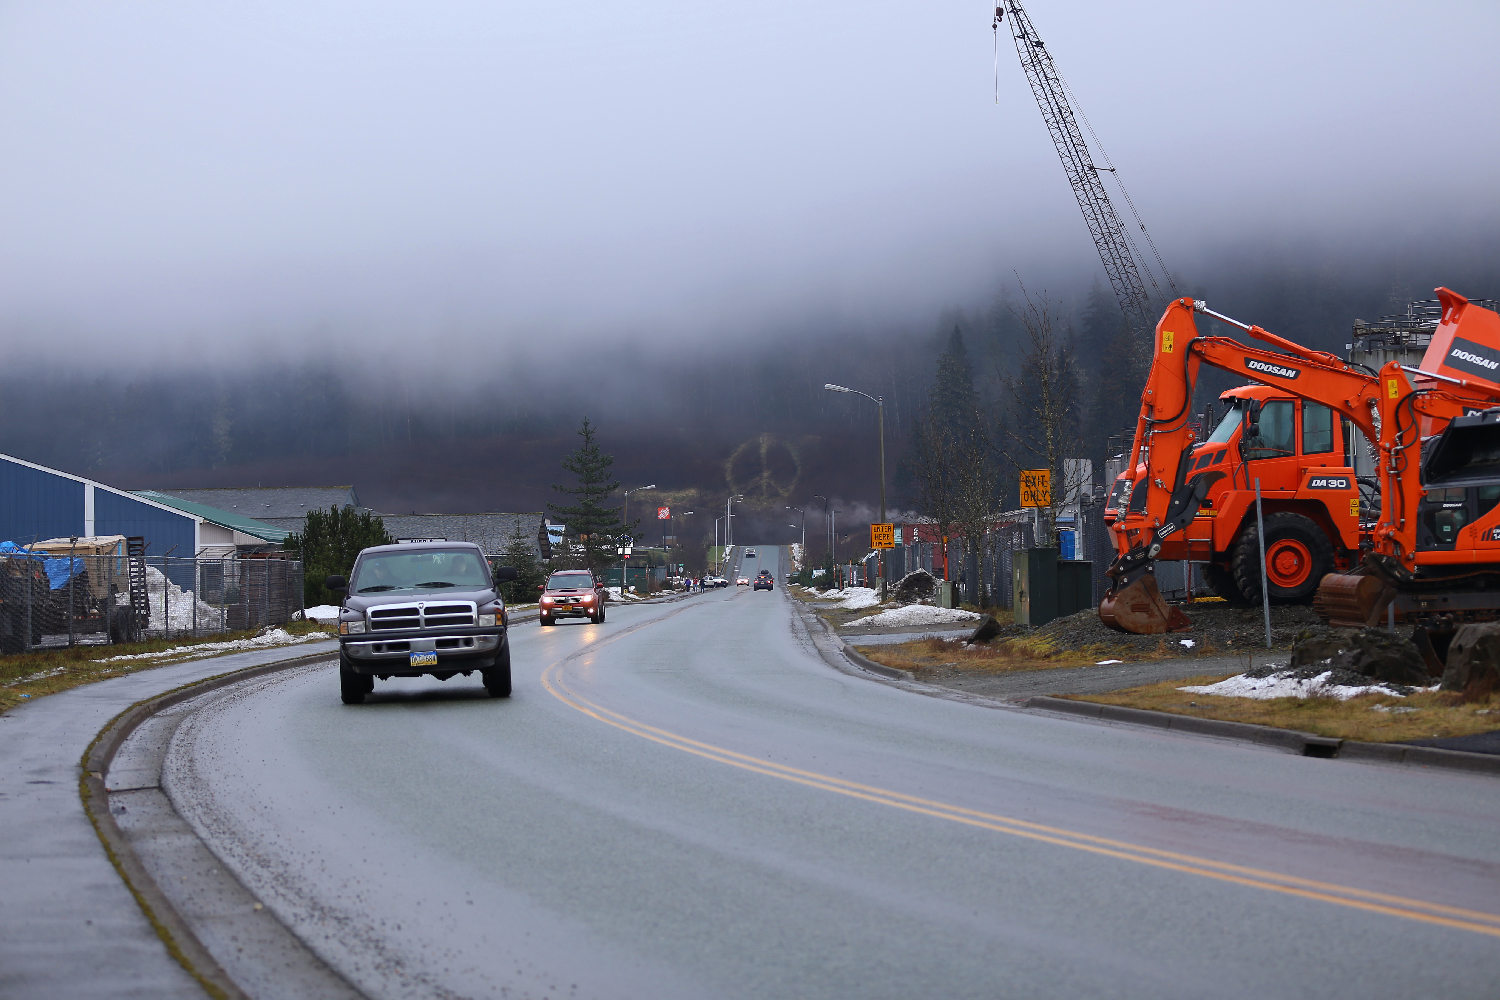 Peace sign Juneau Alaska Commercial Boulevard blvd construction equipment traffic road snow fog hillside